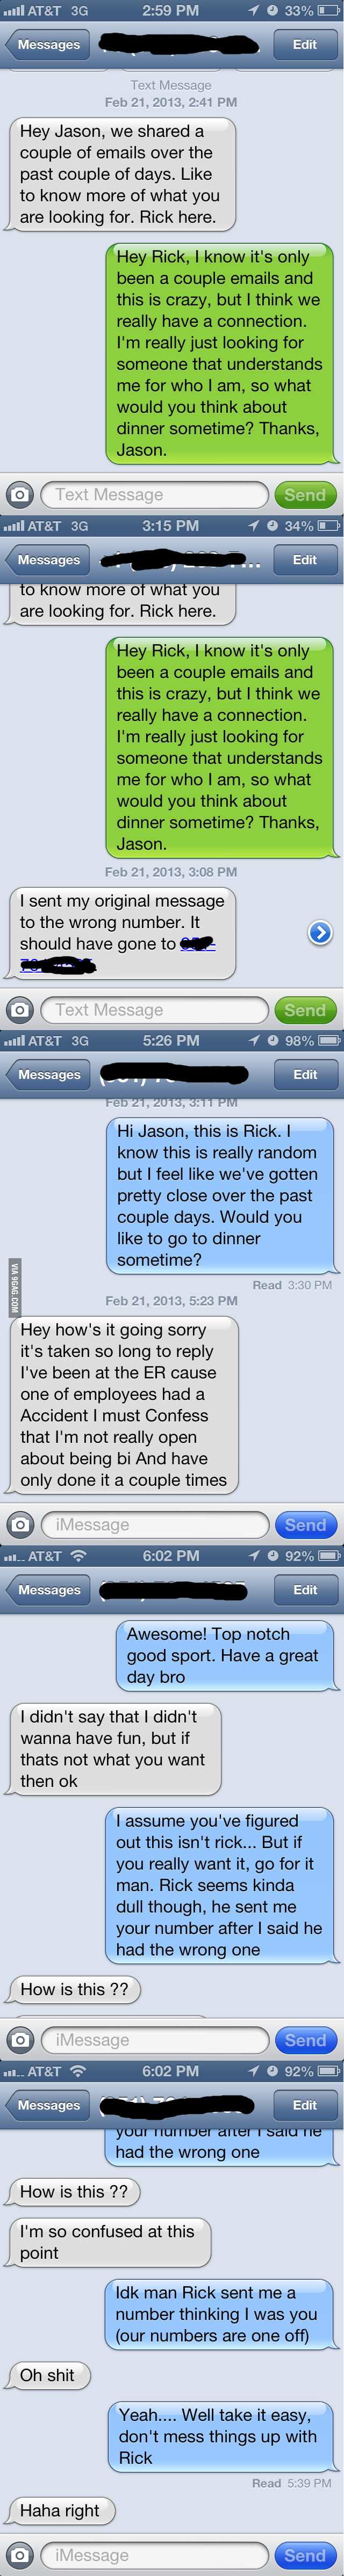 Ultimate Prank Text - 9GAG